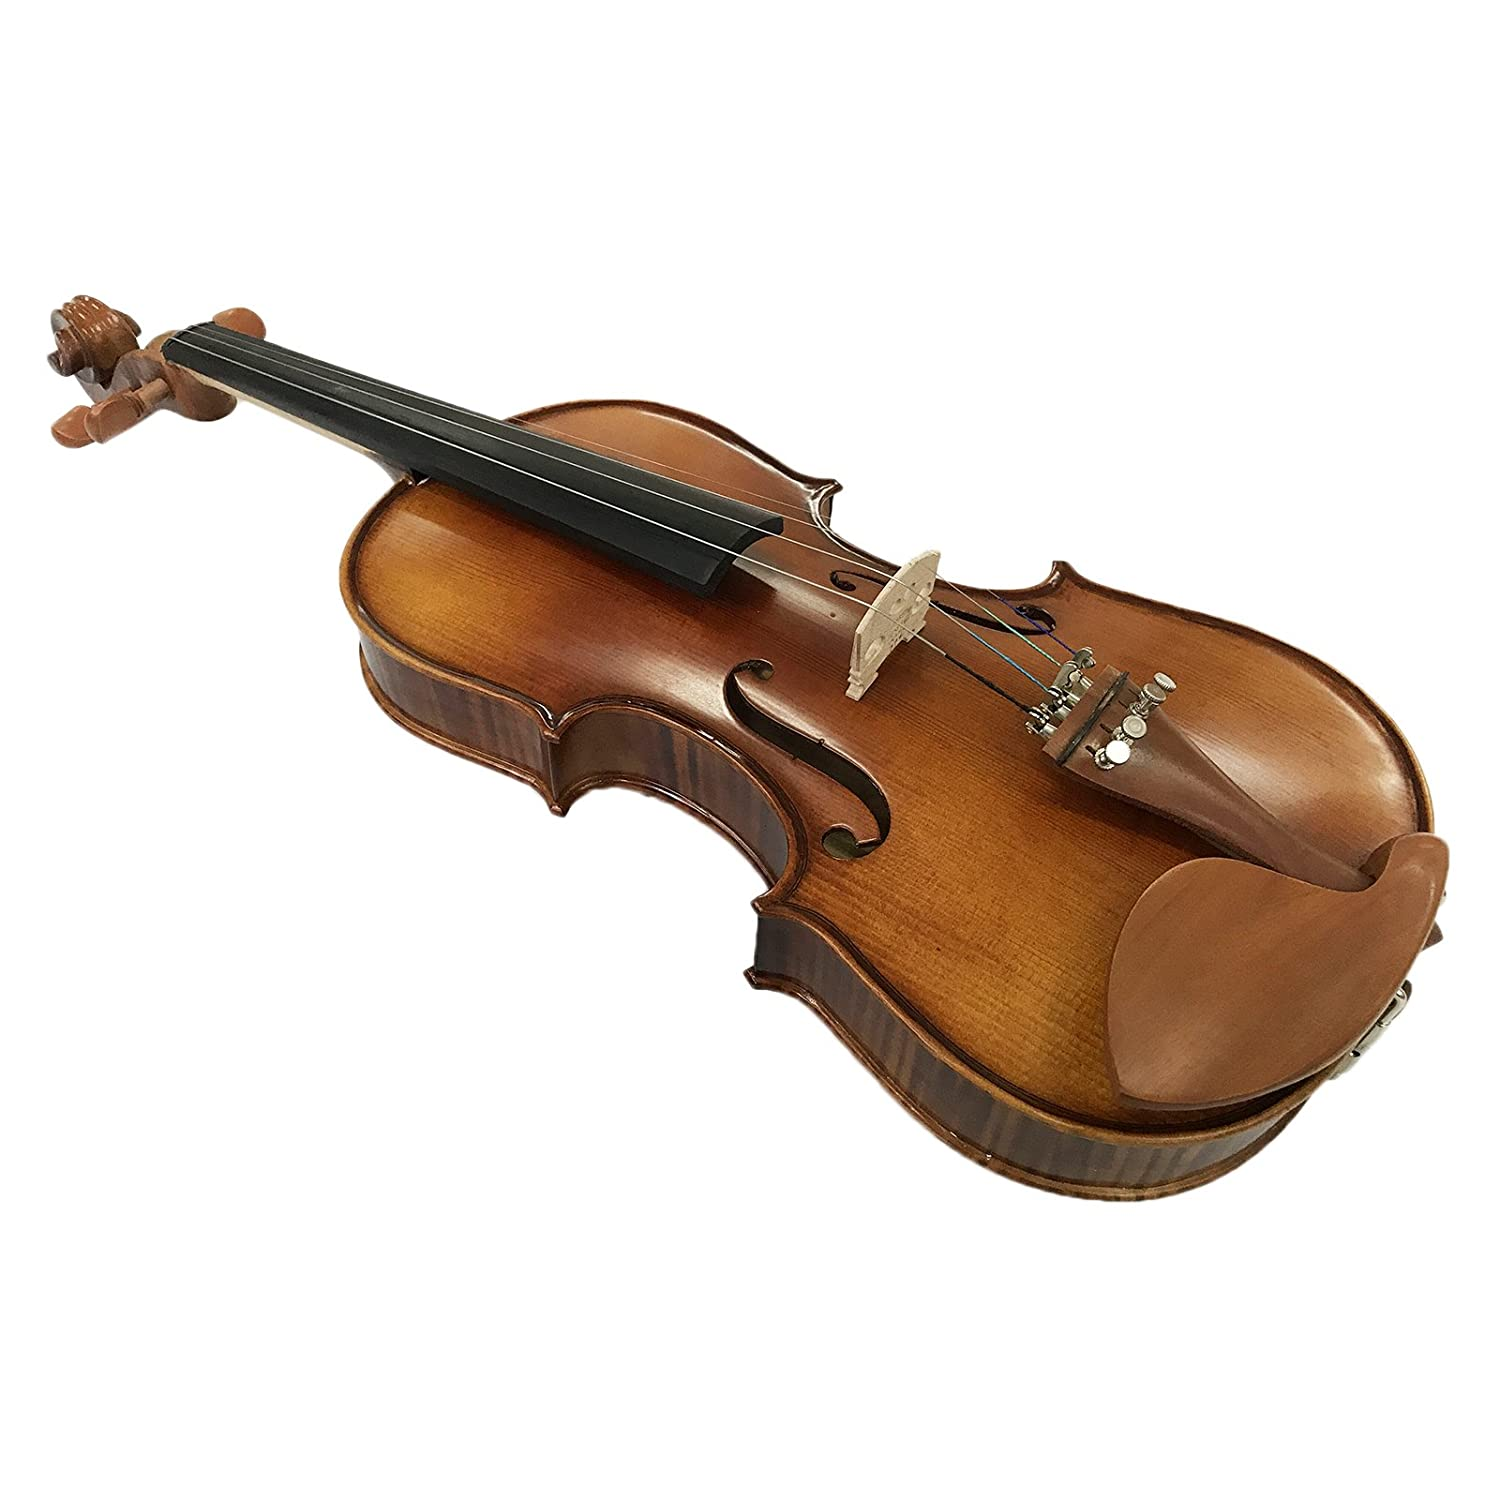 Kinglos YWA1005 4//4 Full Size Handcrafted Solid Wood Student Acoustic Violin Fiddle Starter Kit